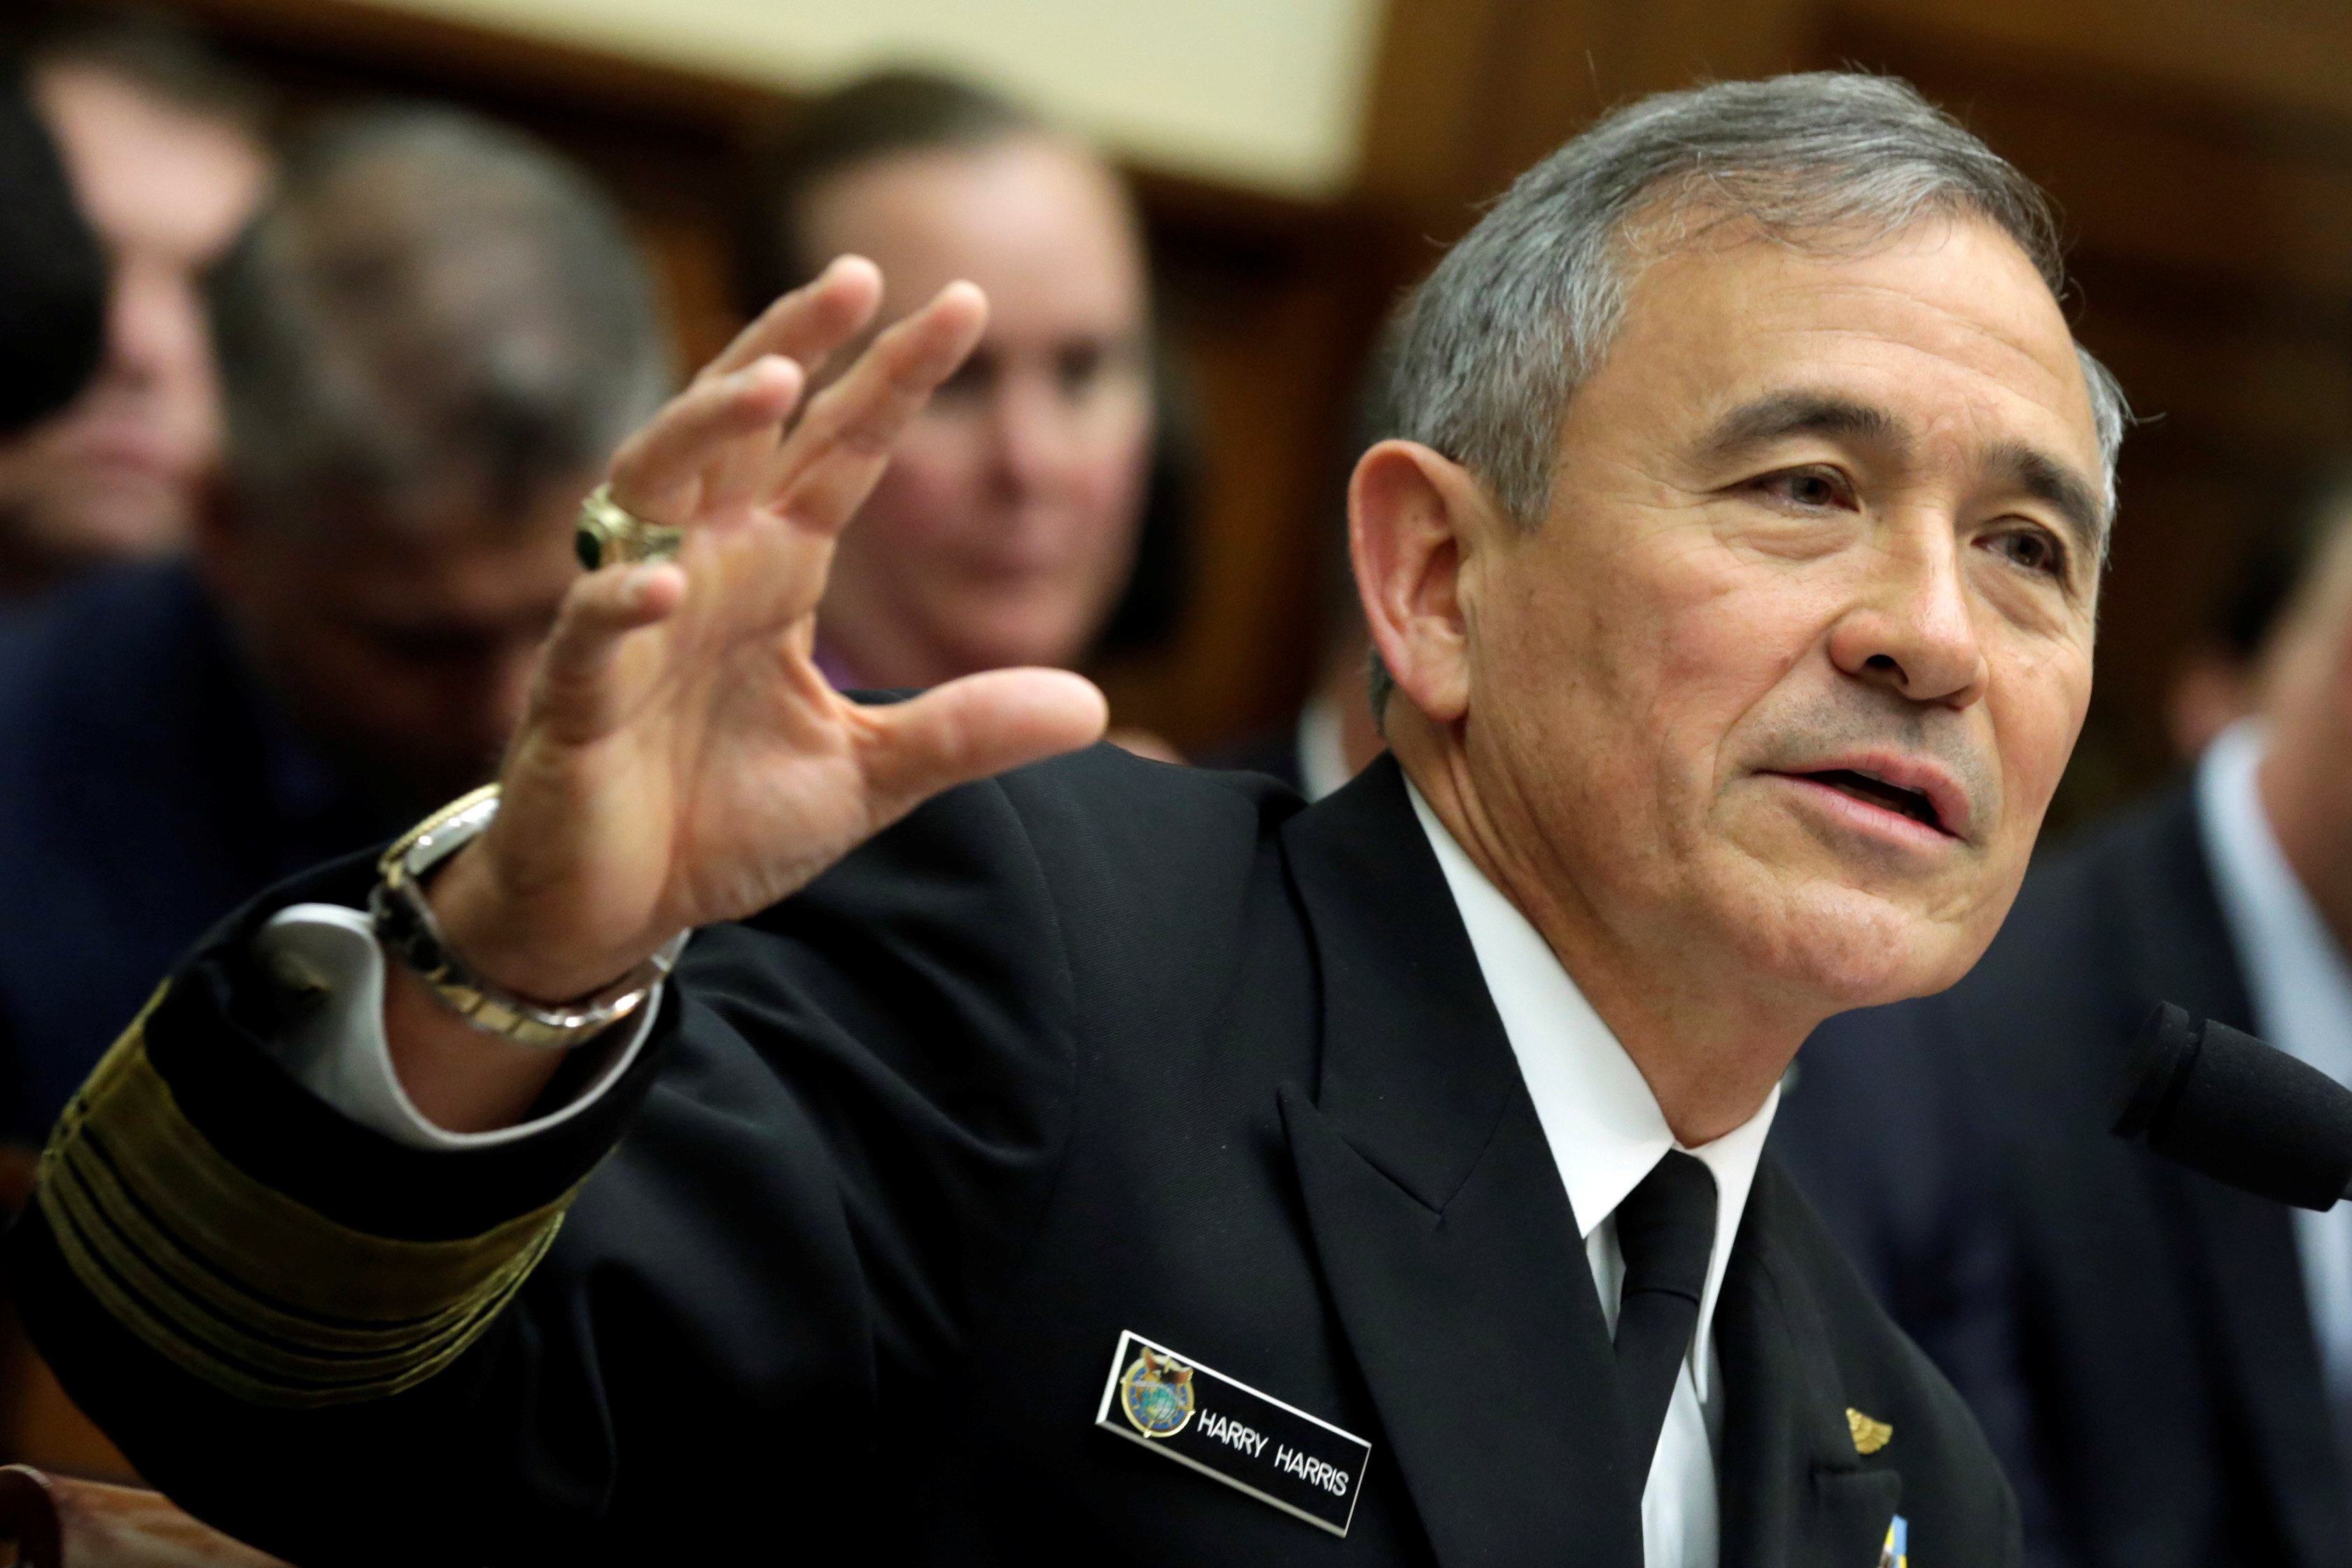 """The Commander of the U.S. Pacific Command, Admiral Harry Harris, testifies before a House Armed Services Committee hearing on """"Military Assessment of the Security Challenges in the Indo-Asia-Pacific Region"""" on Capitol Hill in Washington on April 26, 2017. (REUTERS/Yuri Gripas)"""